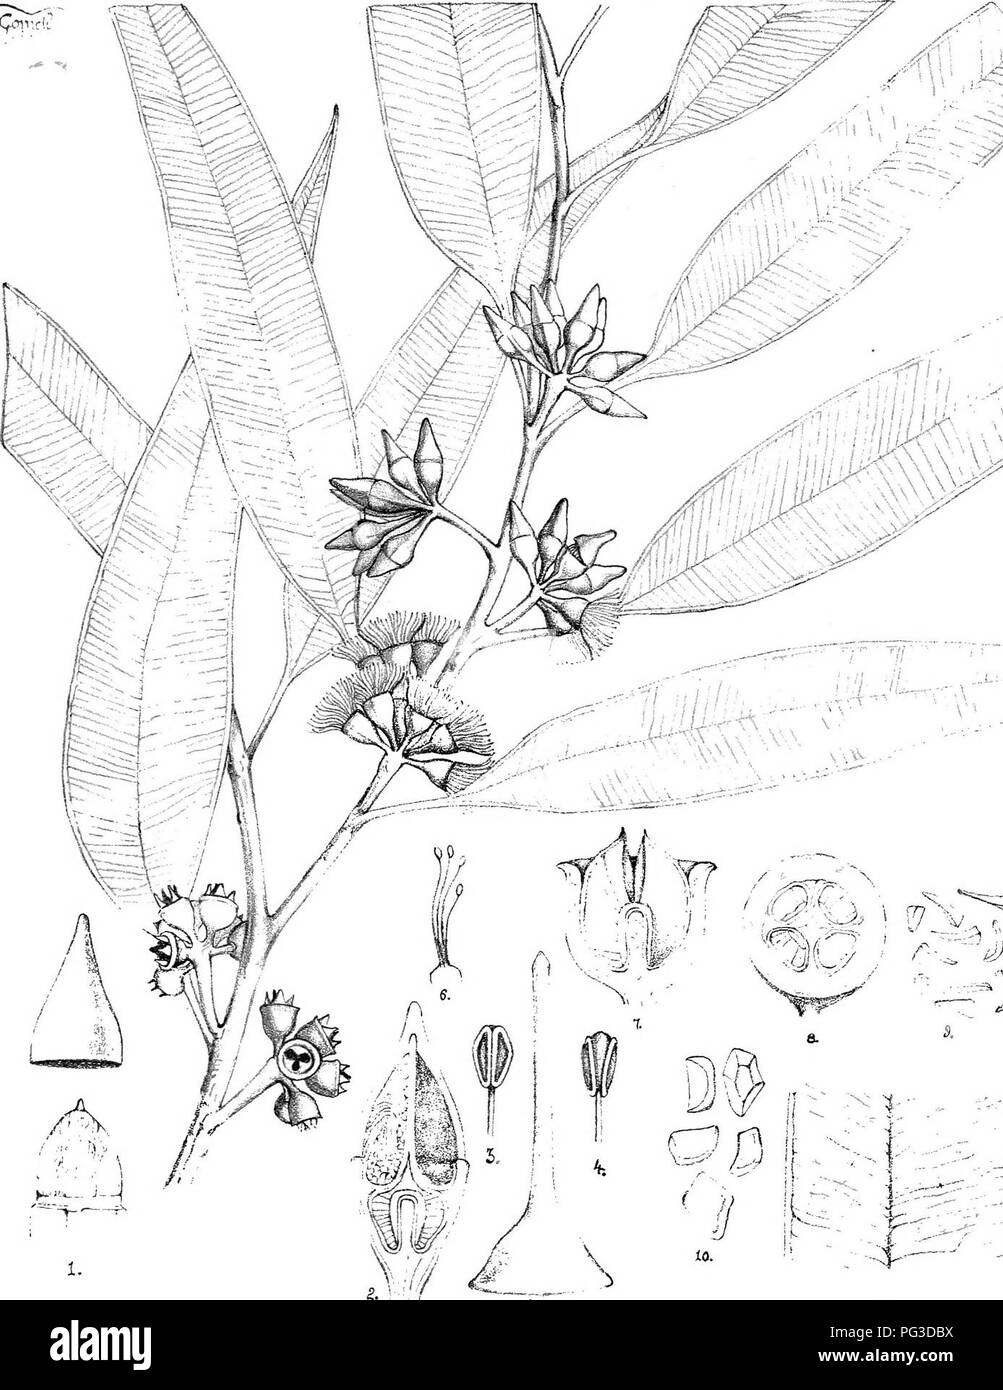 """. Eucalyptographia. A descriptive atlas of the eucalypts of Australia and the adjoining islands;. Eucalyptus; Botany. ^ % J': '''51i/> (7""""% -sJ^ â i3 !' . 1 1 ^V--- _ j ,^- â '-4 ^. .-- ---' ^':''' -â ^ -j 11- SleaiLL Luho Crov """"-ri;i-.-:rR Cfl'^.e V^ lirigiiSfjptliig 5r(ggmafea. .&77^i^. Please note that these images are extracted from scanned page images that may have been digitally enhanced for readability - coloration and appearance of these illustrations may not perfectly resemble the original work.. Mueller, Ferdinand von, 1825-1896. Melbourne, J. Ferres, Govt. Print; [e - Stock Image"""